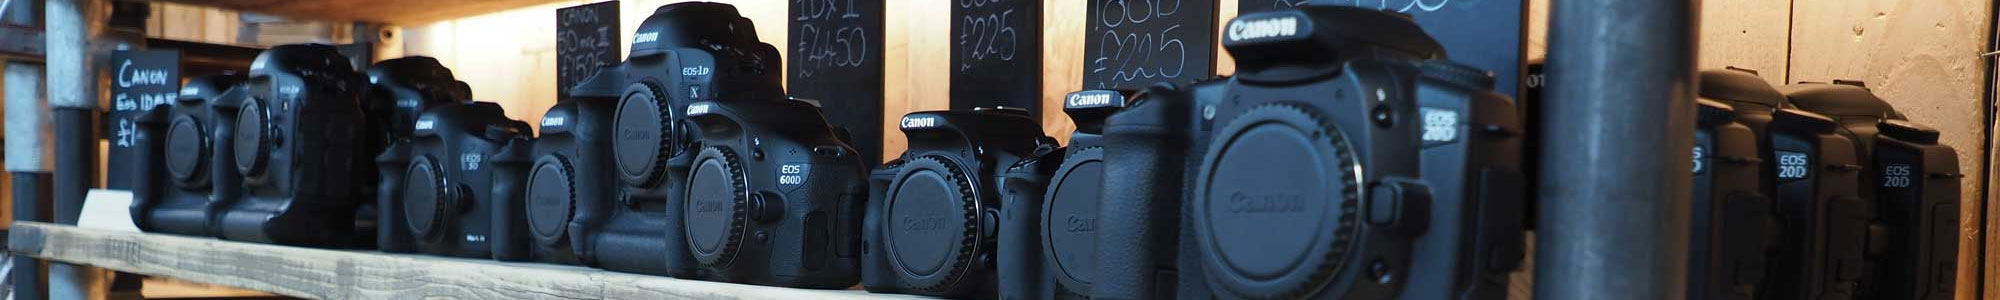 Used cameras from Harrison Cameras